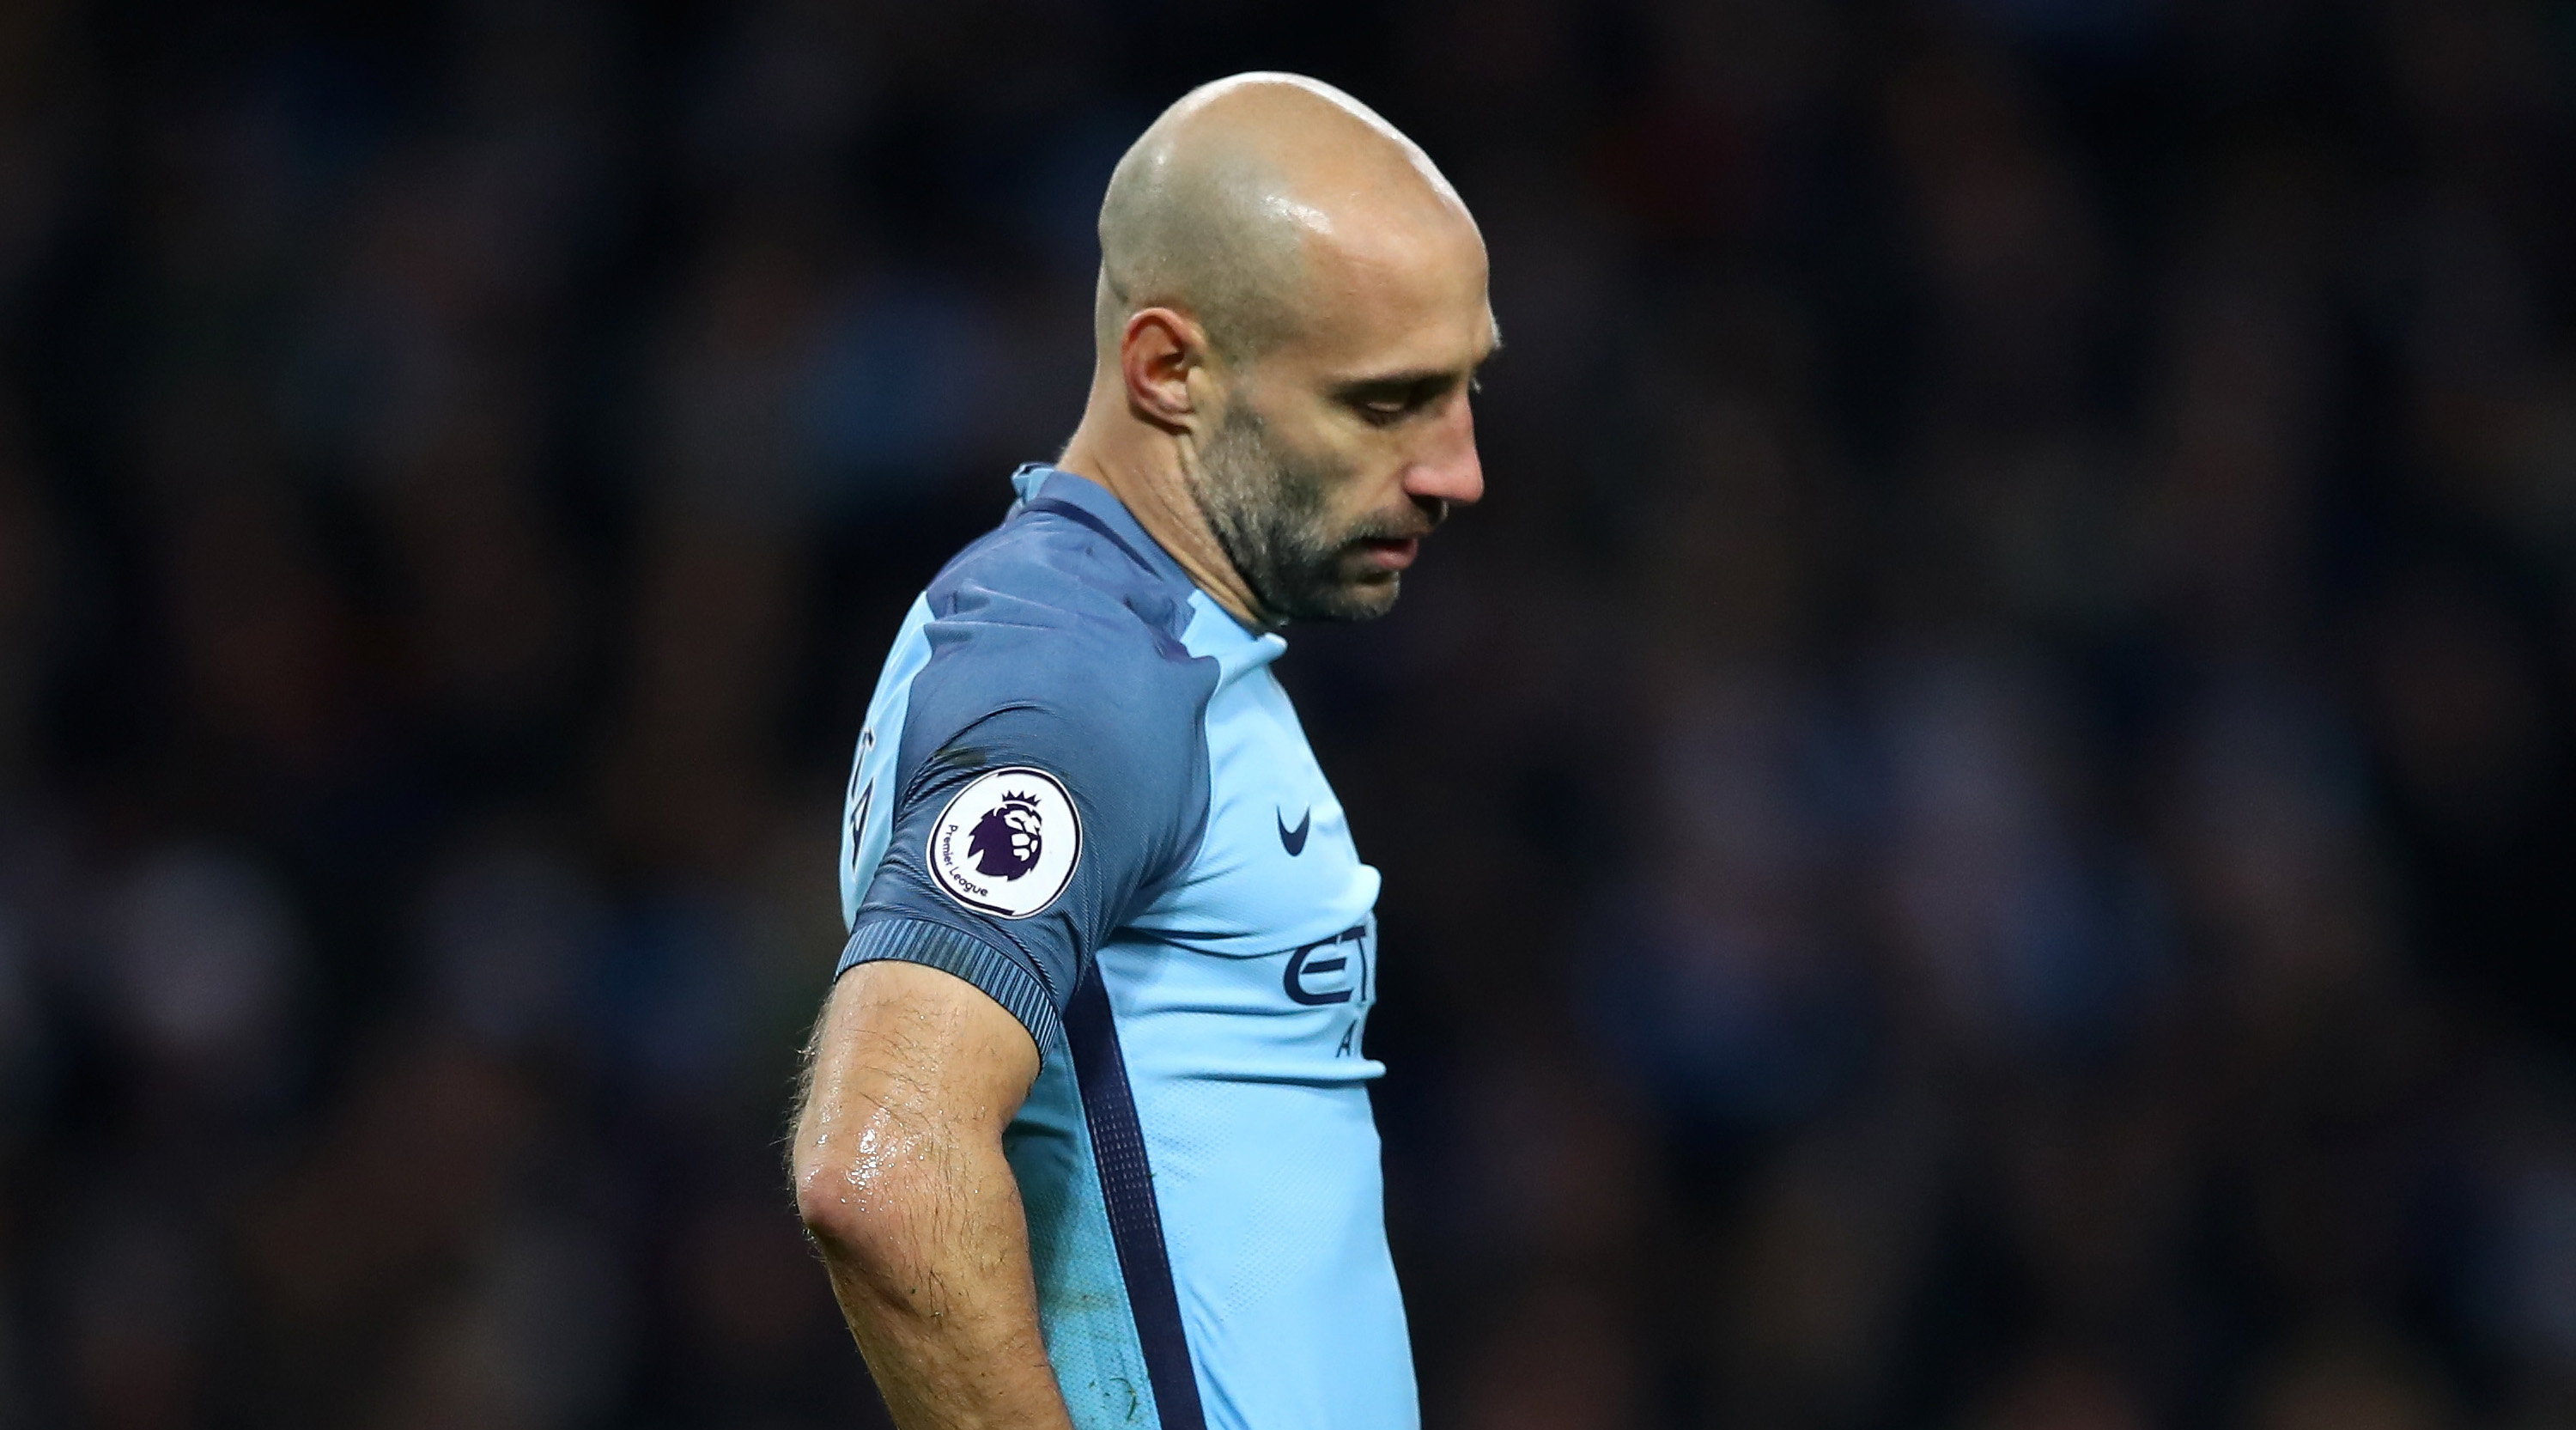 MANCHESTER, ENGLAND - DECEMBER 18: Pablo Zabaleta of Manchester City is dejected after Arsenal score their first goal during the Premier League match between Manchester City and Arsenal at the Etihad Stadium on December 18, 2016 in Manchester, England. (Photo by Clive Brunskill/Getty Images)